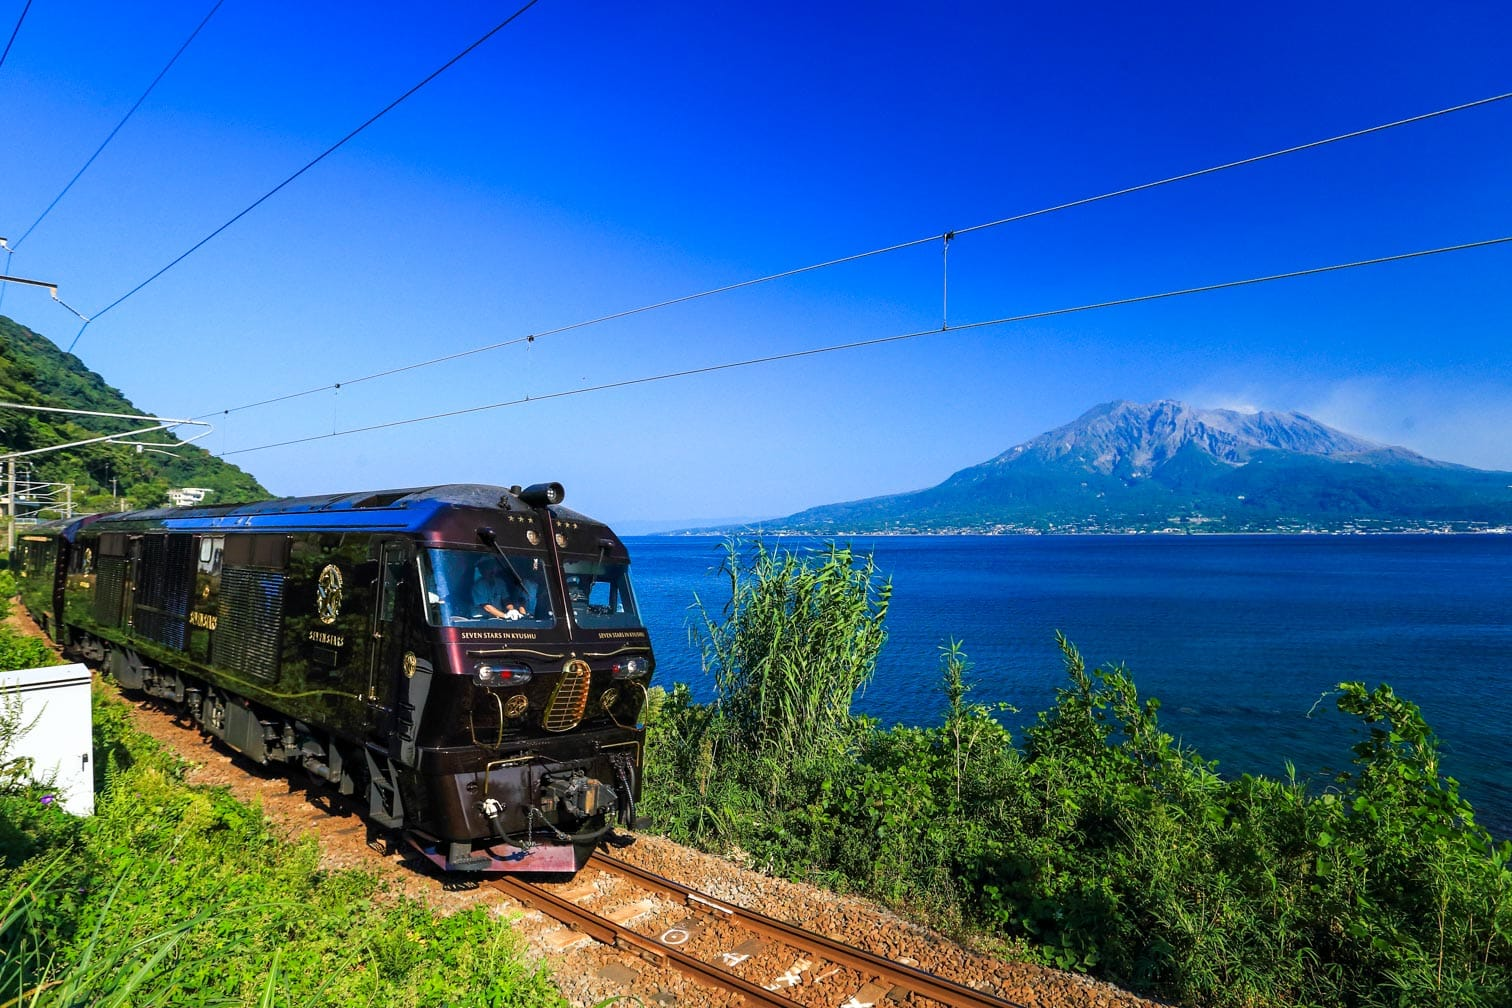 Kyushu Seven Stars train on the coast